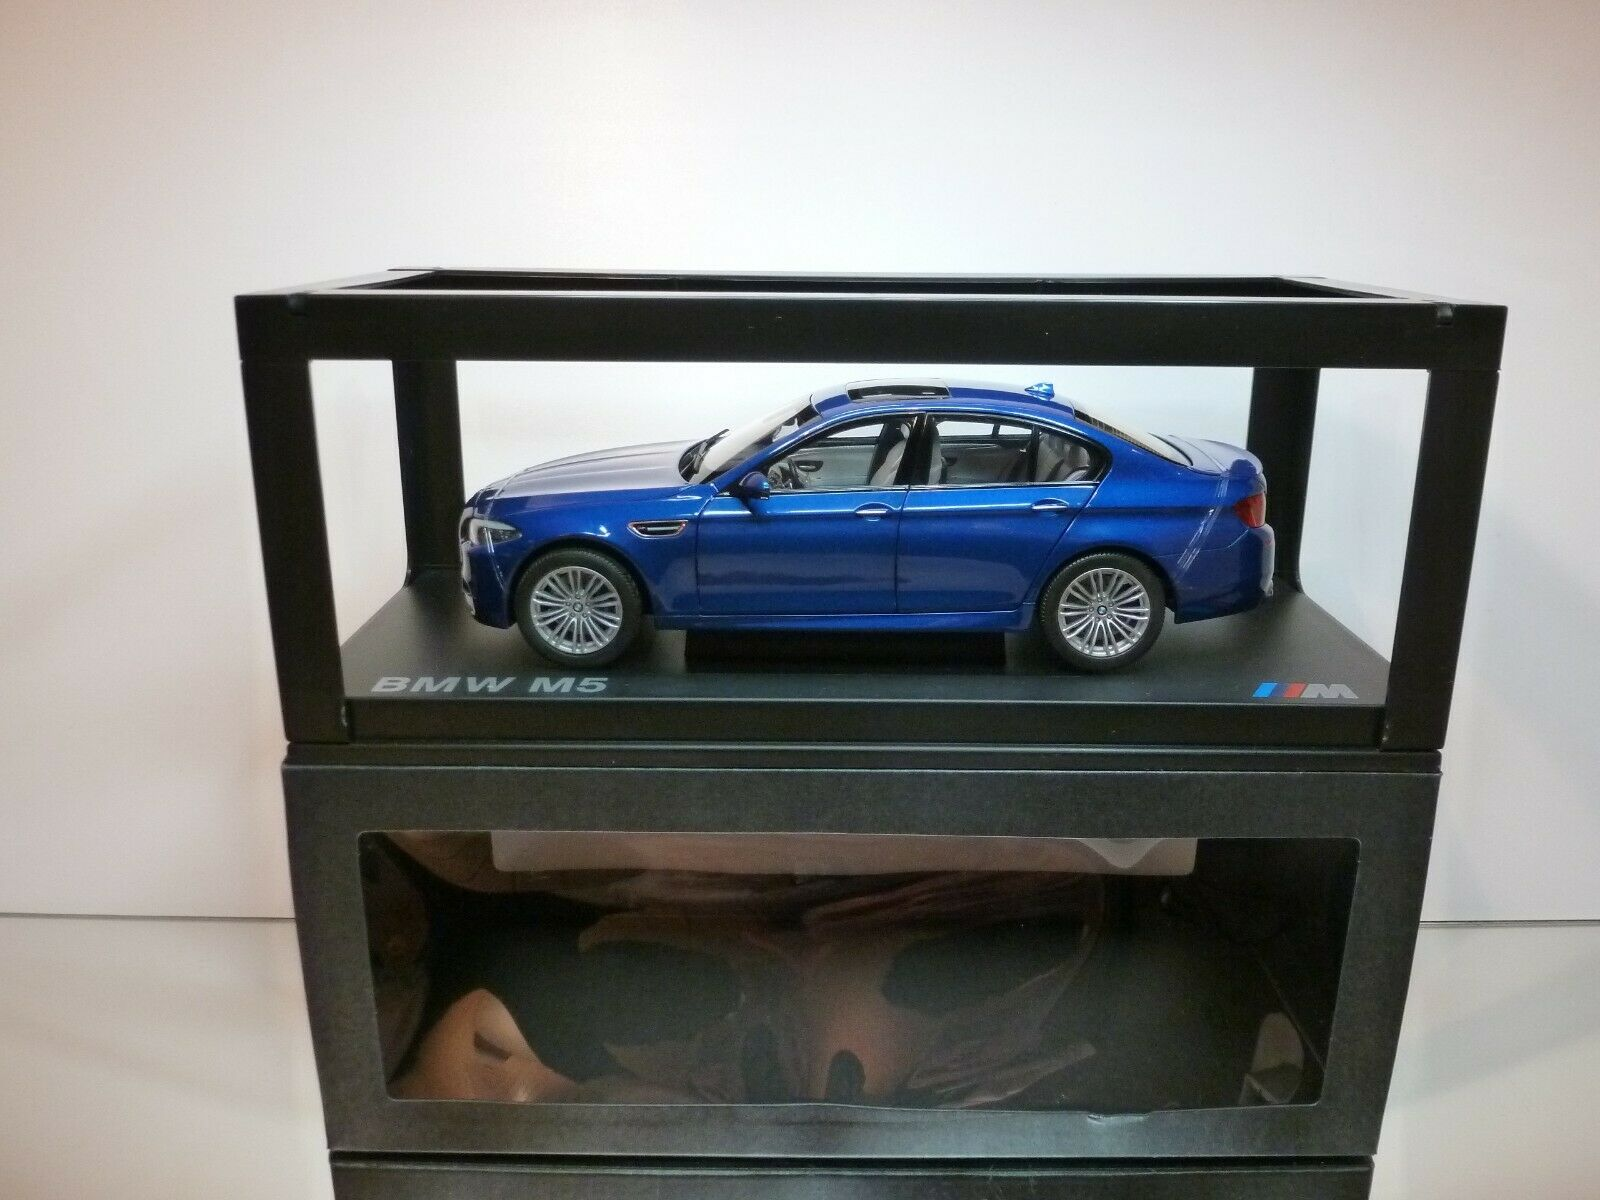 PARAGON 186352 BMW M5 - F10 - MONTE CARLO bleu 1 18 - EXCELLENT IN BOX